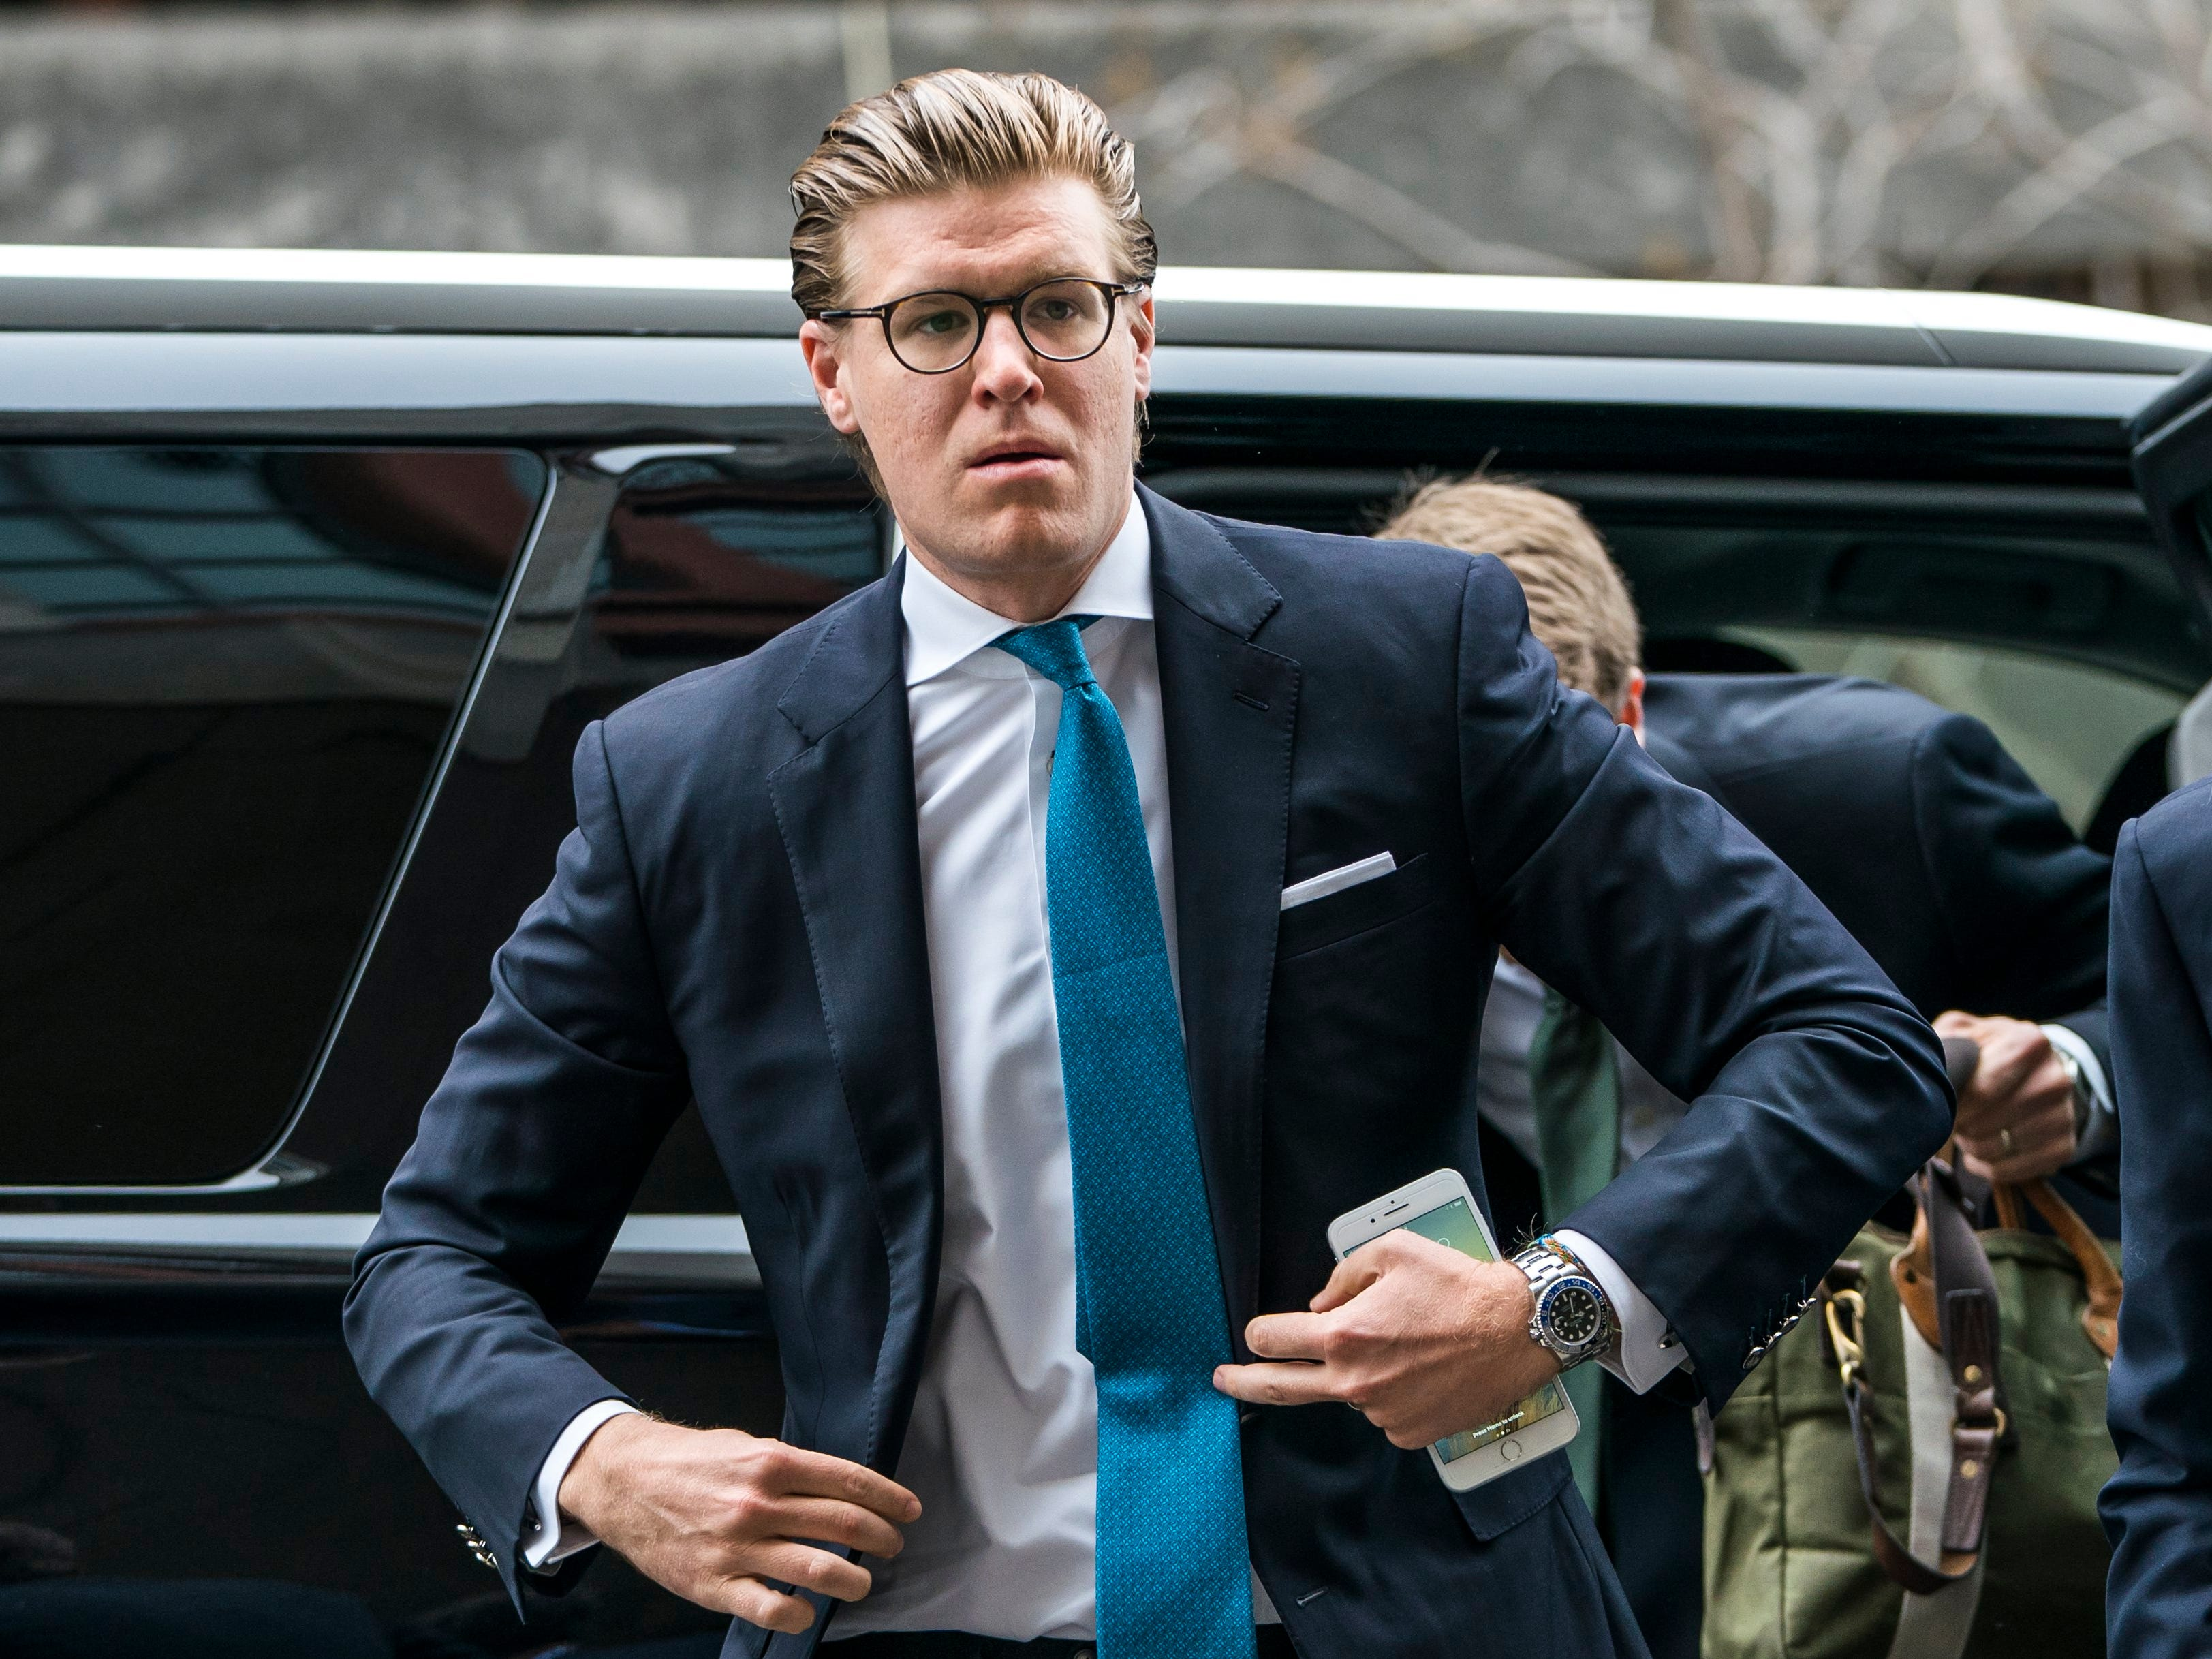 epa06643143 Lawyer  Alex Van Der Zwaan walks into the DC Federal Courthouse before hearing his sentence for making false statements to federal investigators in Washington, DC, USA, 03 April 2018. Van Der Zwaan, the son-in-law of a Ukrainian-Russian oligarch, is a target in Special Counsel Robert Mueller's investigation into Russian interference in US presidential elections.  EPA-EFE/JIM LO SCALZO ORG XMIT: JJL01